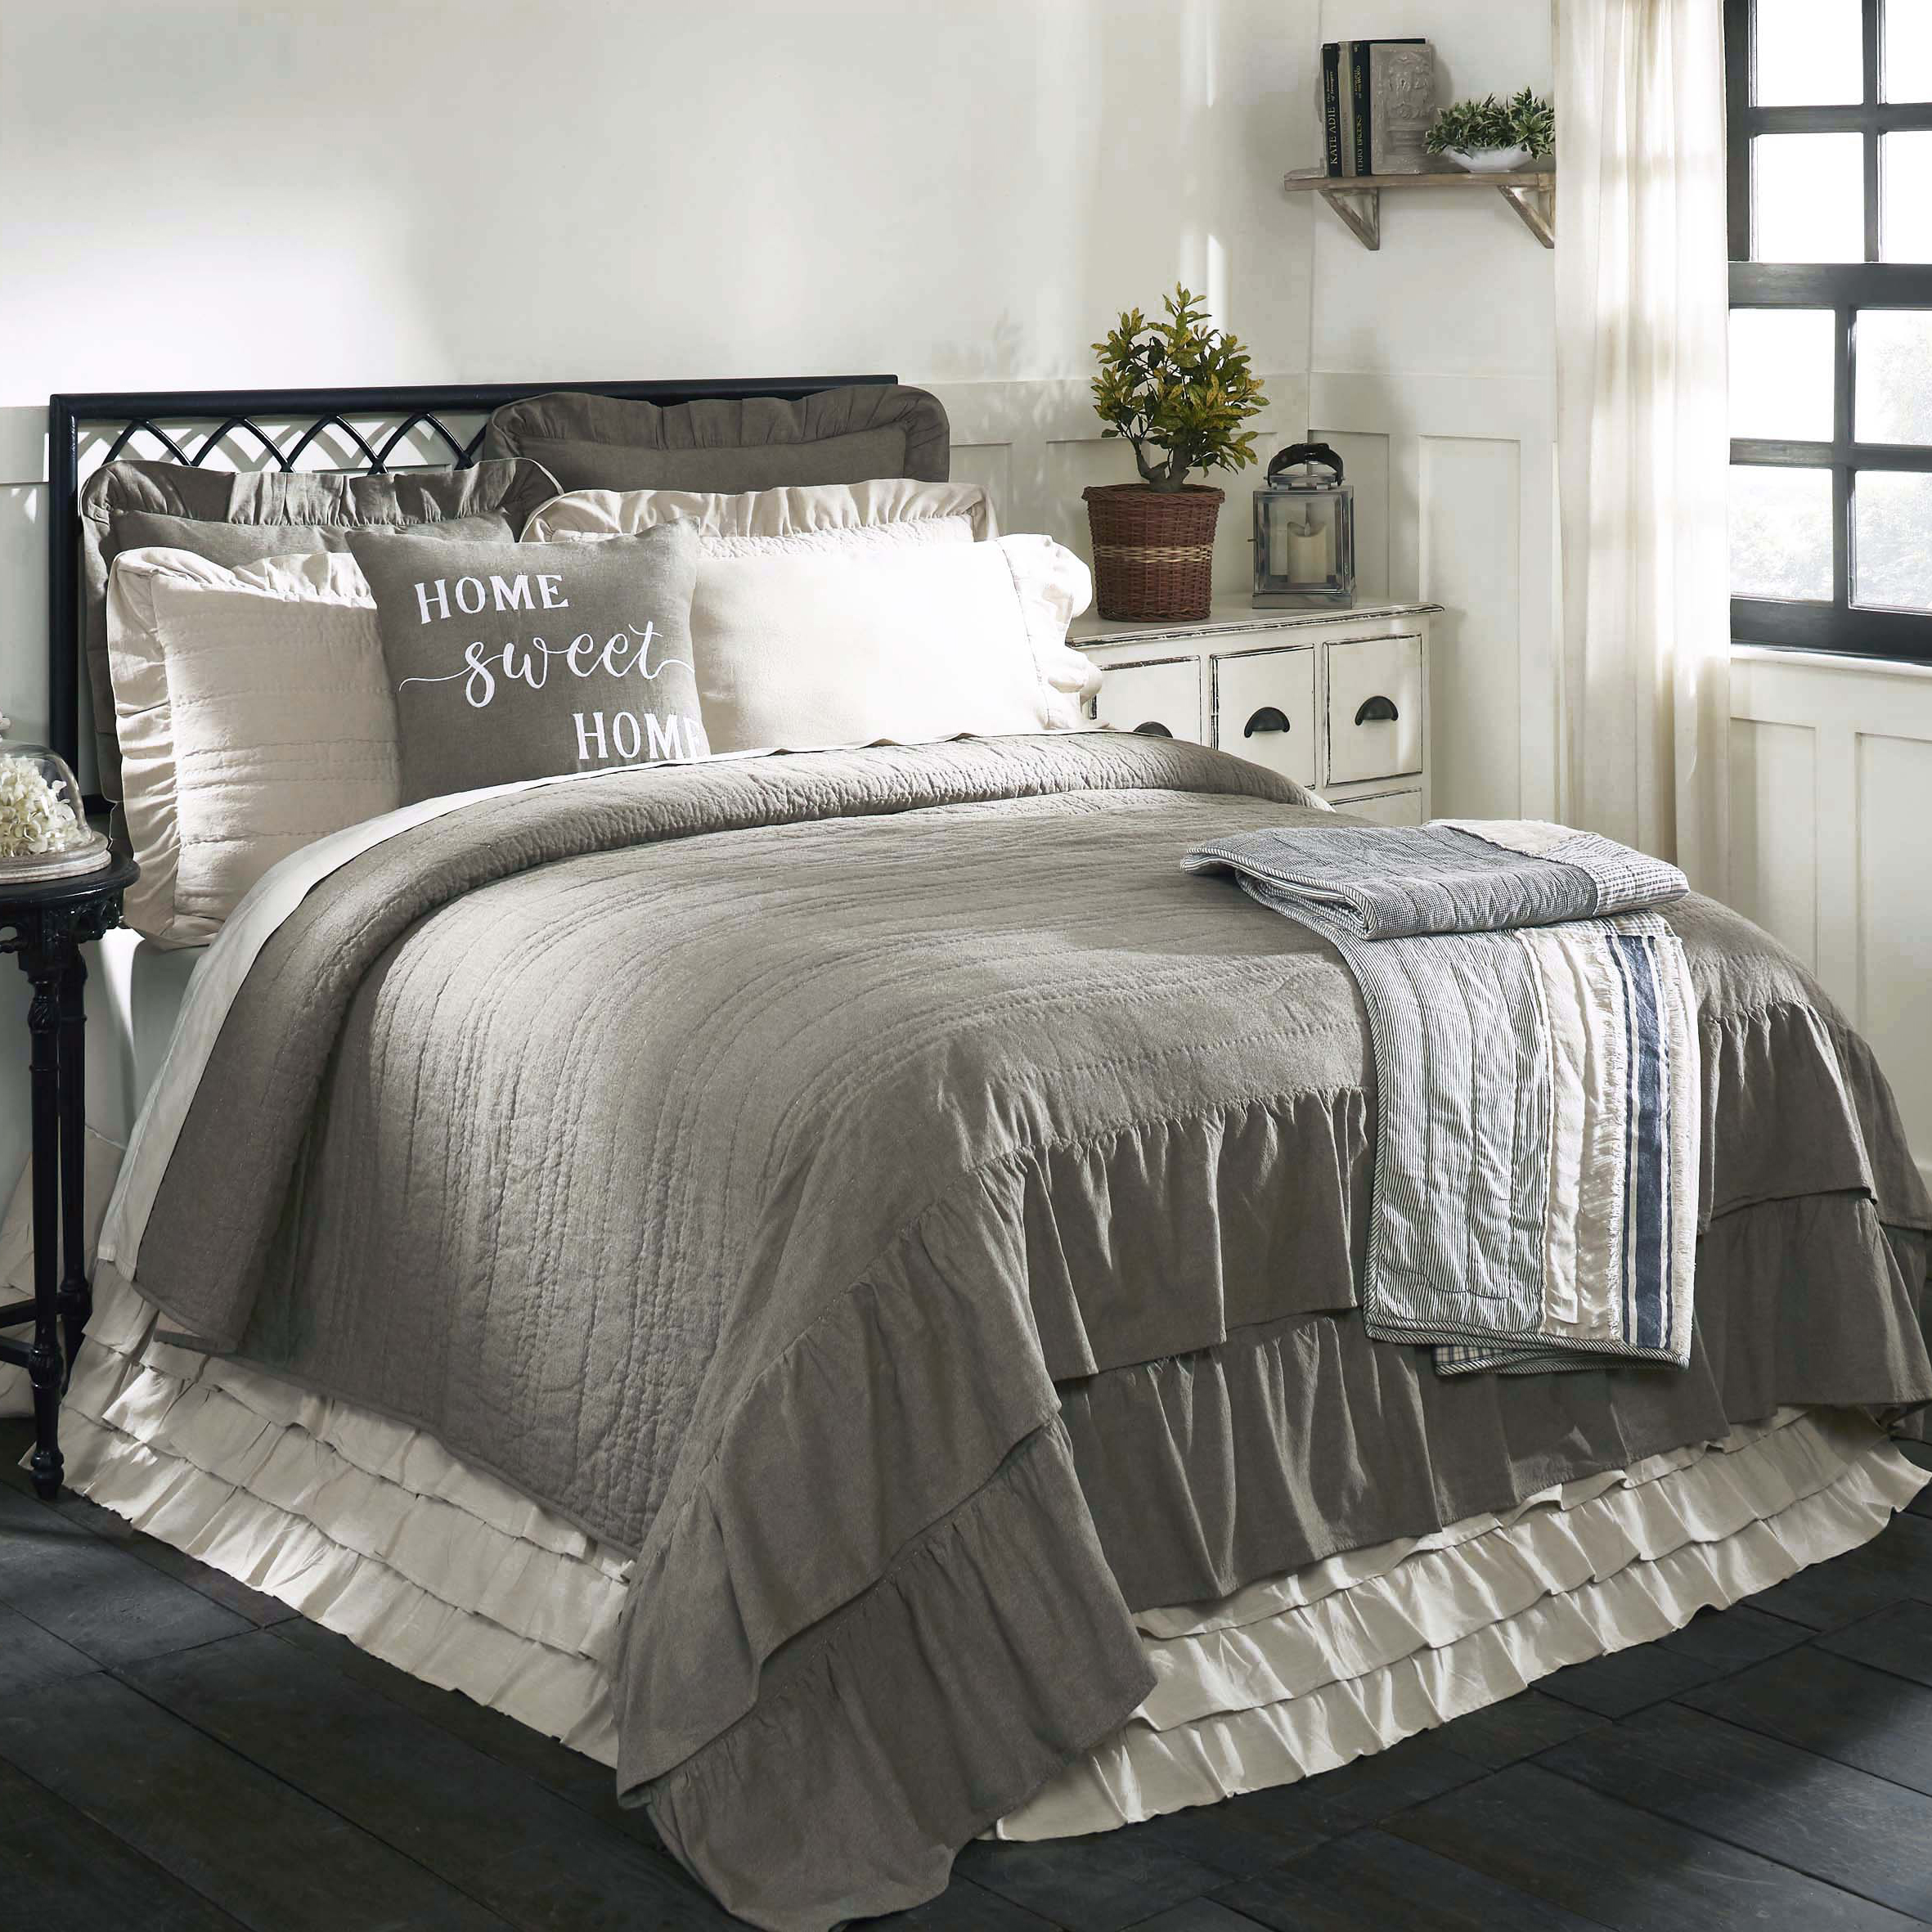 Ruffled Chambray Reversible Quilt Luxury King Piper